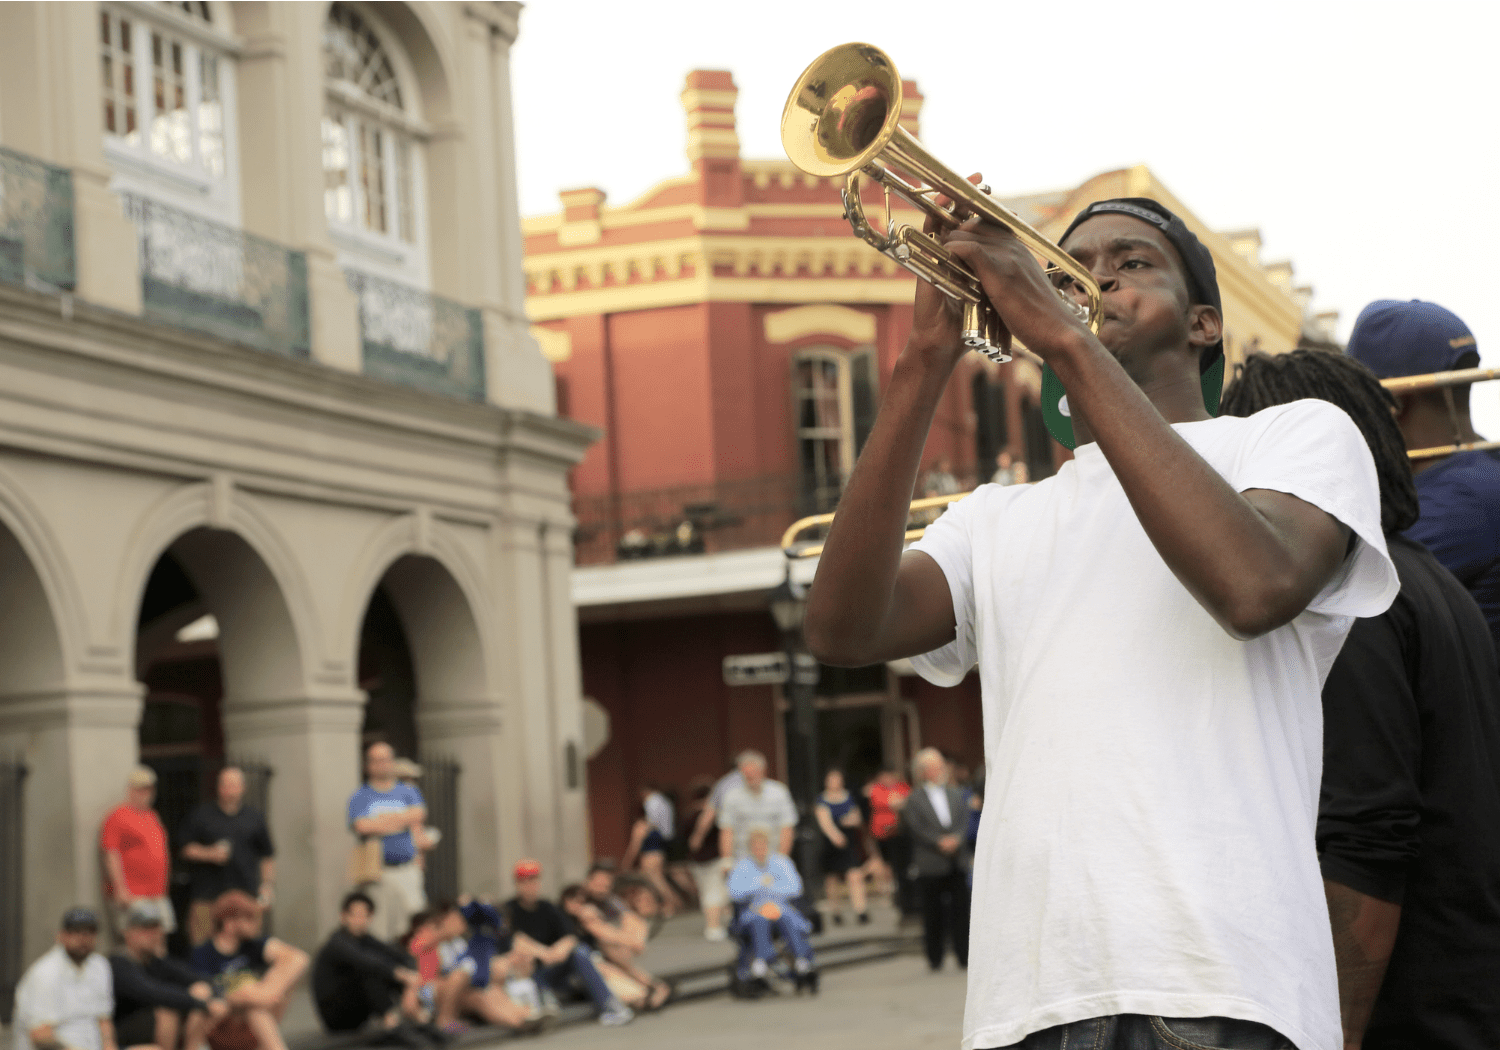 A musician plays the trumpet in New Orleans